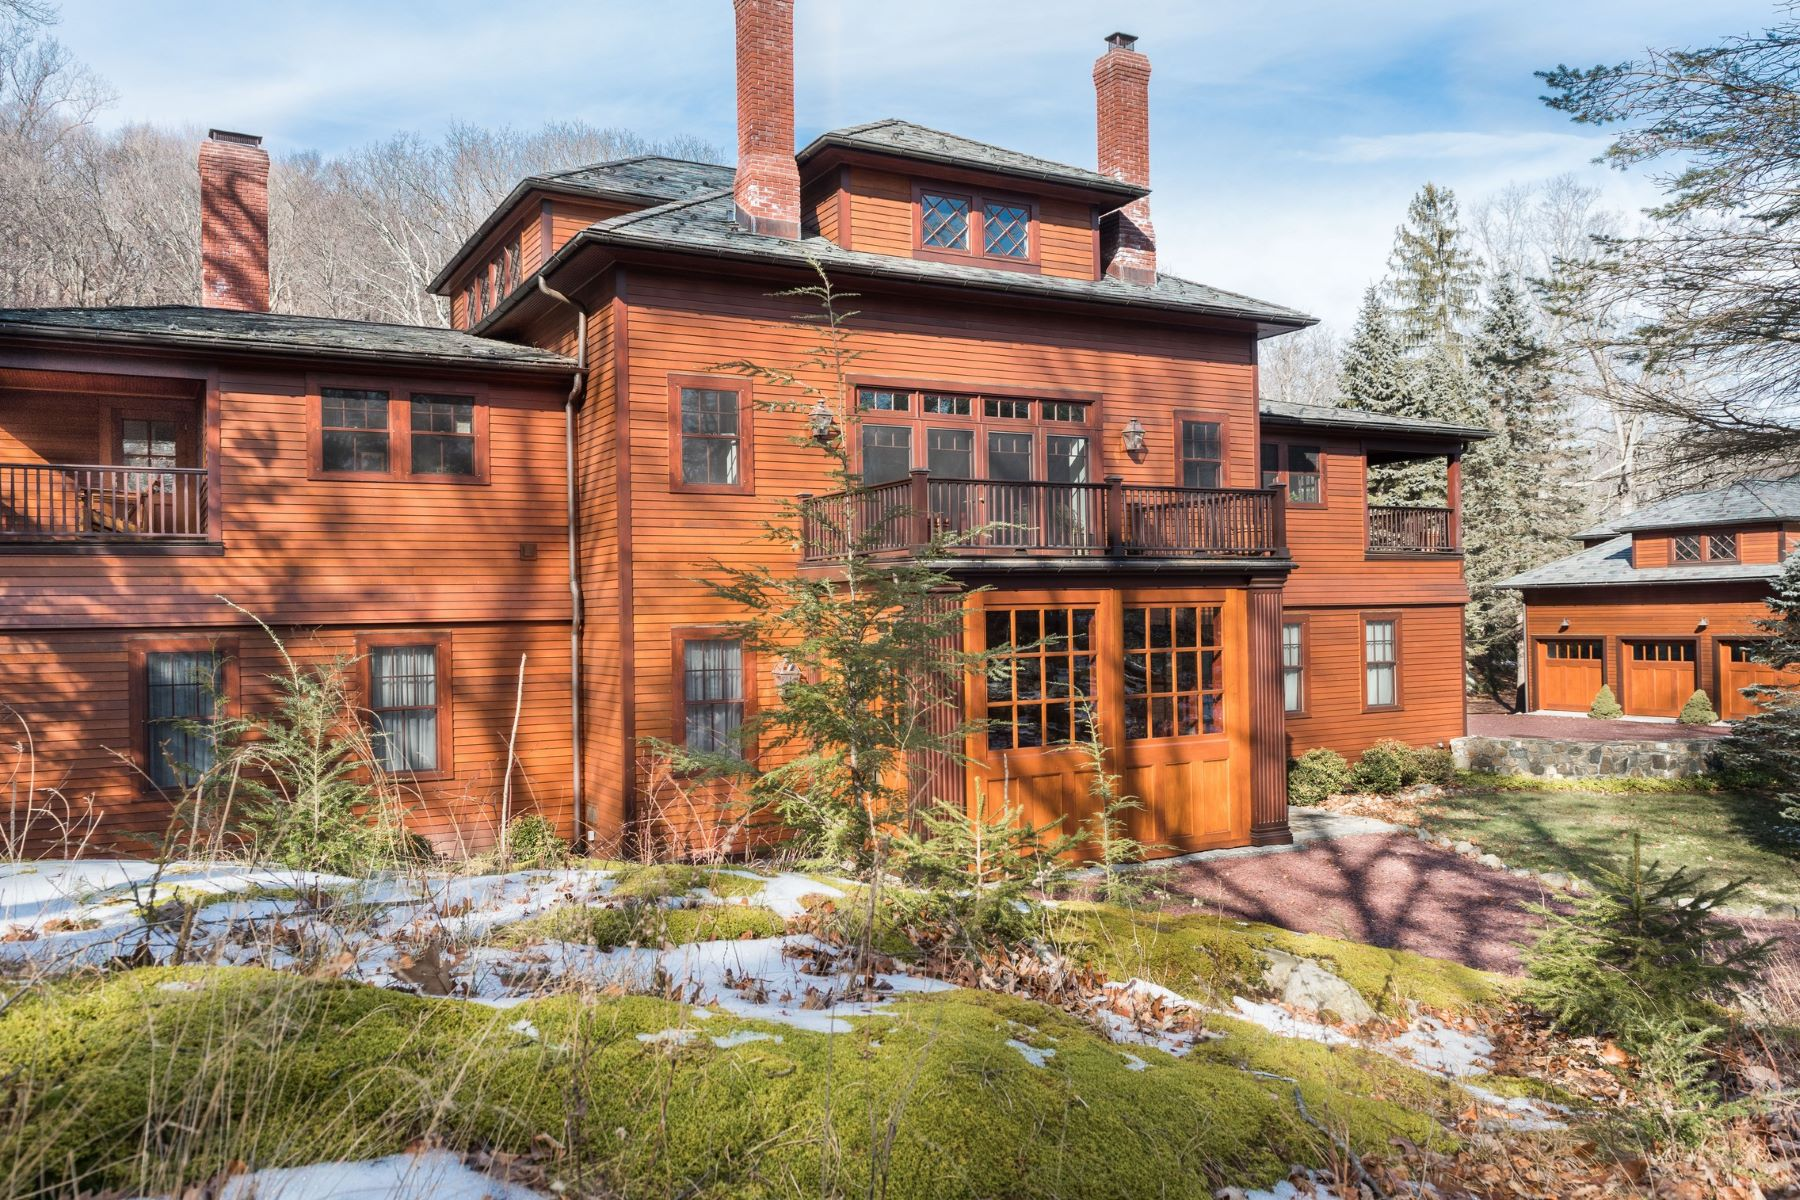 Single Family Homes for Active at Tuxedo Park Carriage House 18 Patterson Brook Road Tuxedo Park, New York 10987 United States